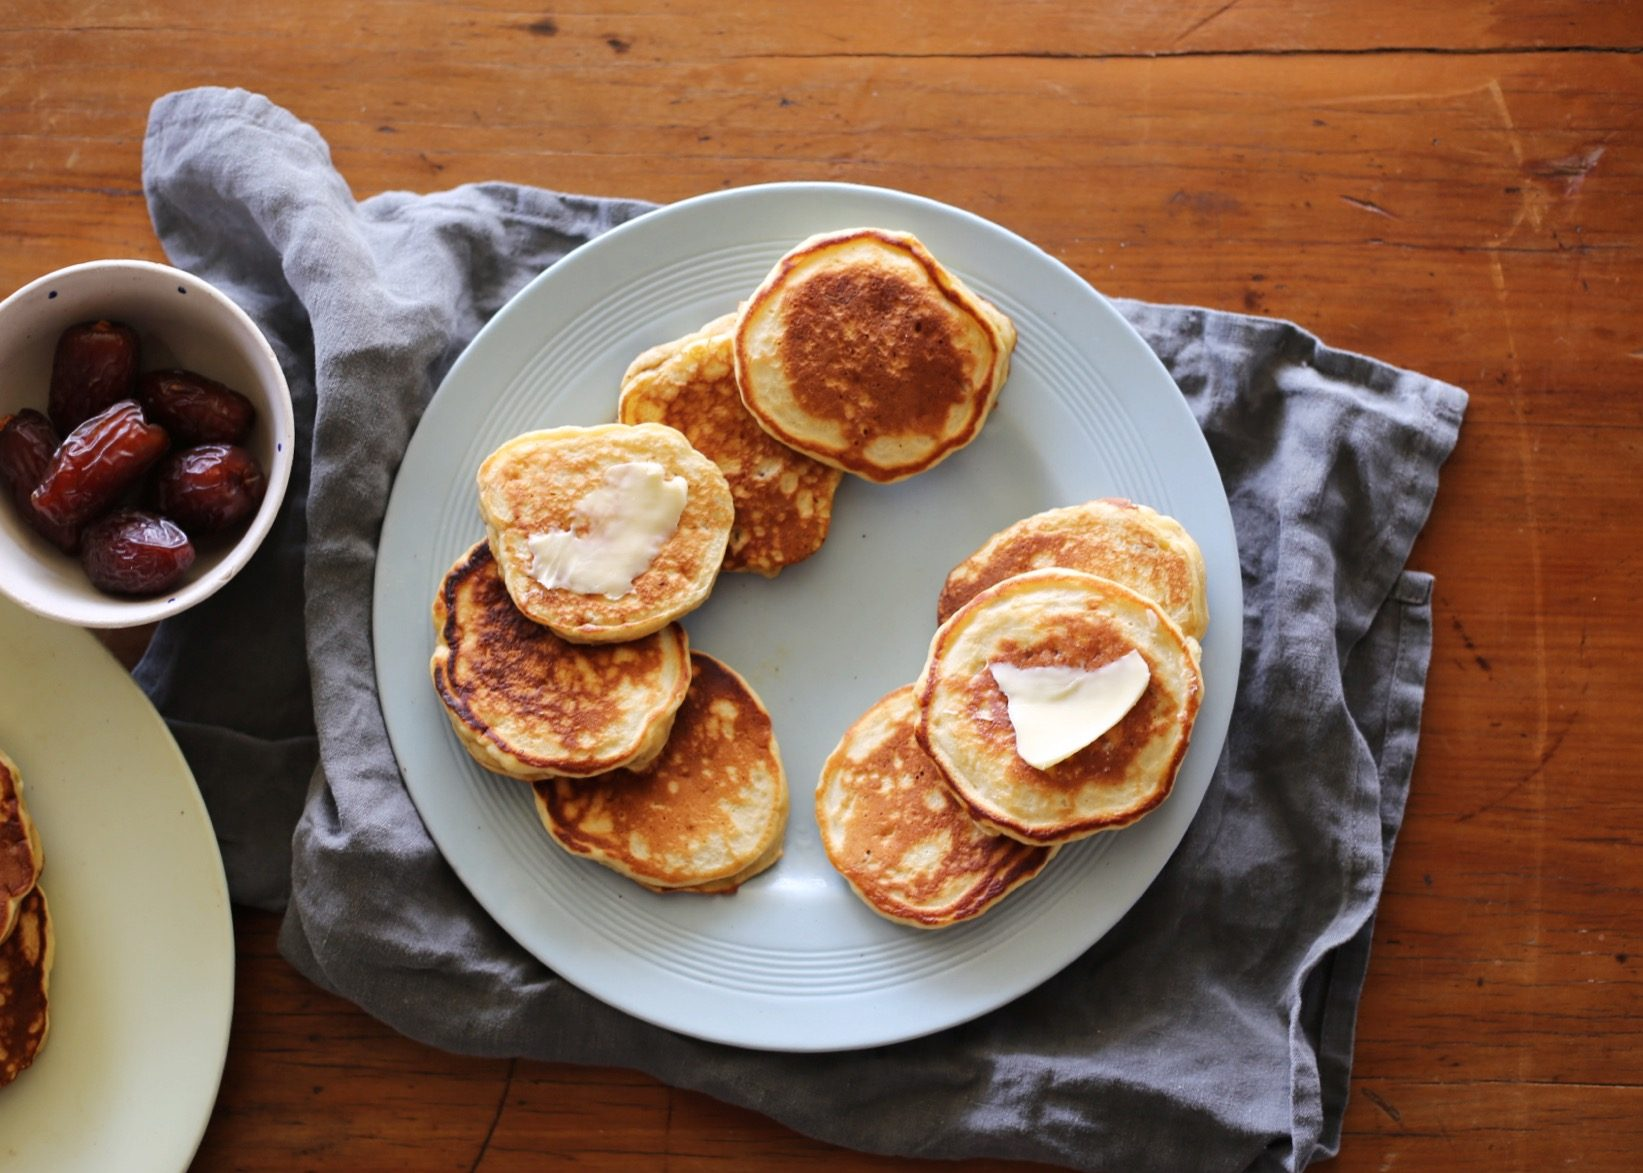 Date and banana pikelets from Annabel Crabb